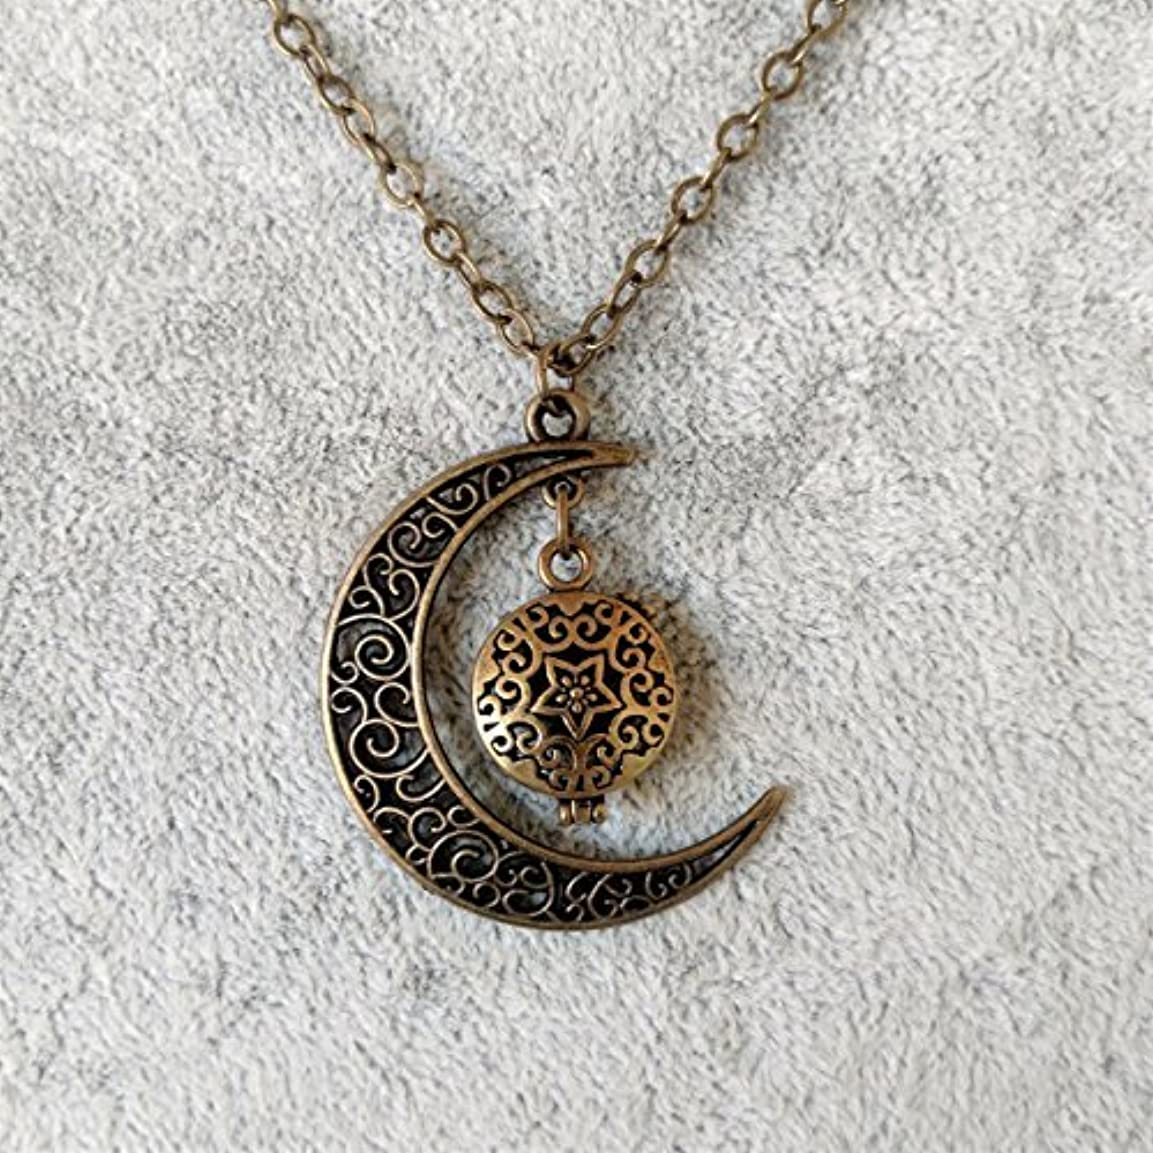 黙認するむちゃくちゃレタスLunar Crescent Moon with Small Bronze-tone Locket Aromatherapy Necklace Essential Oil Diffuser Locket Pendant...